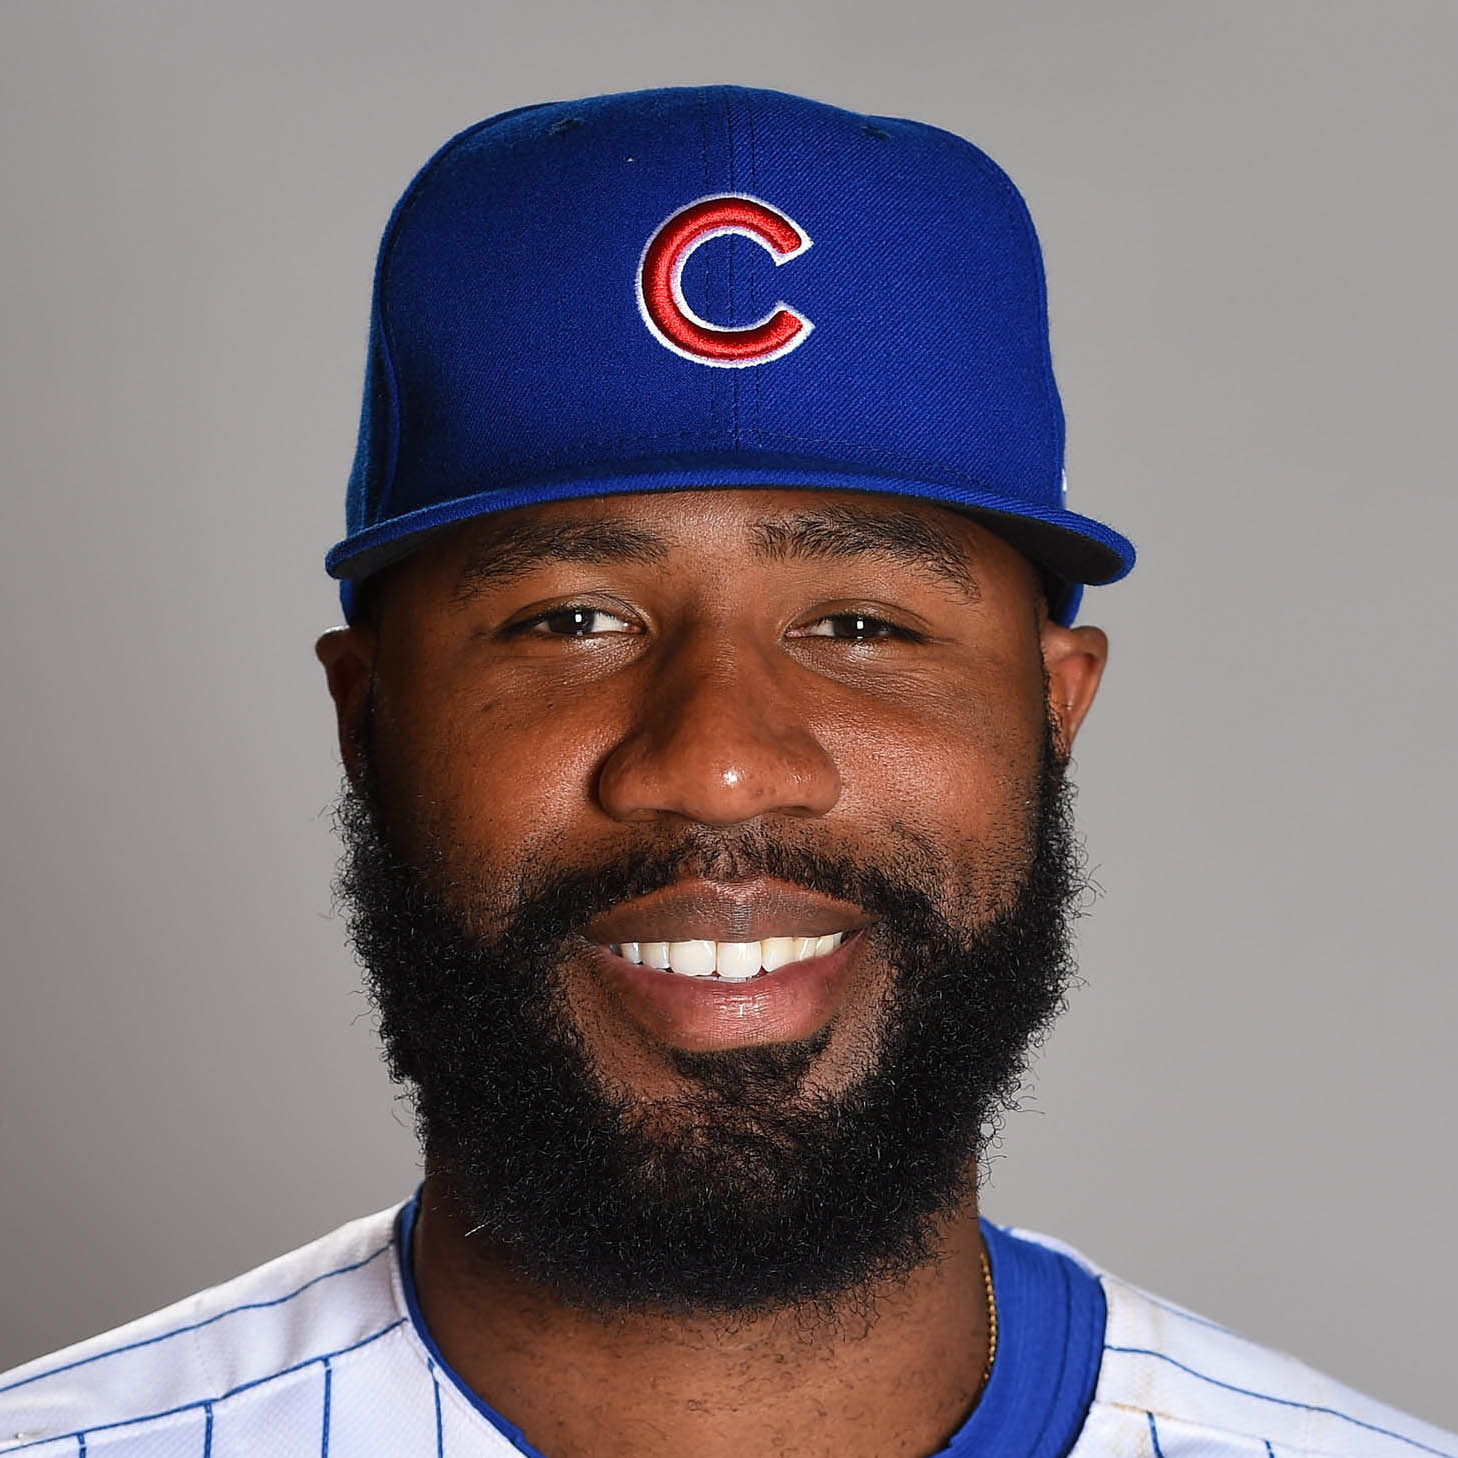 Jason Heyward (L) Headshot